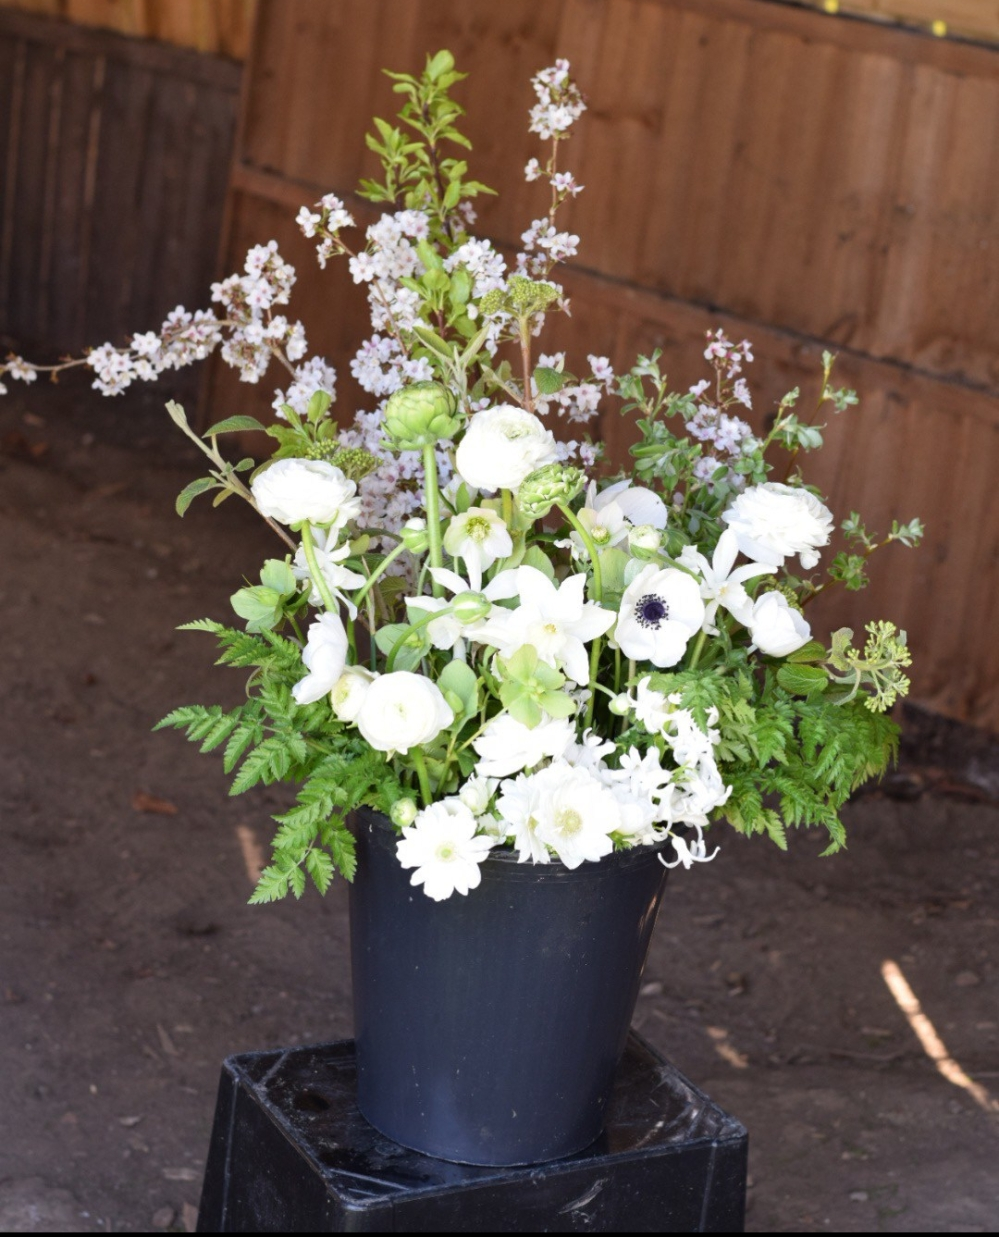 How to Condition Flowers, place stems immediately they are cut into deep tepid water and move to a cool dark place , Swan Cottage Flowers, Local Seasonal British Flowers